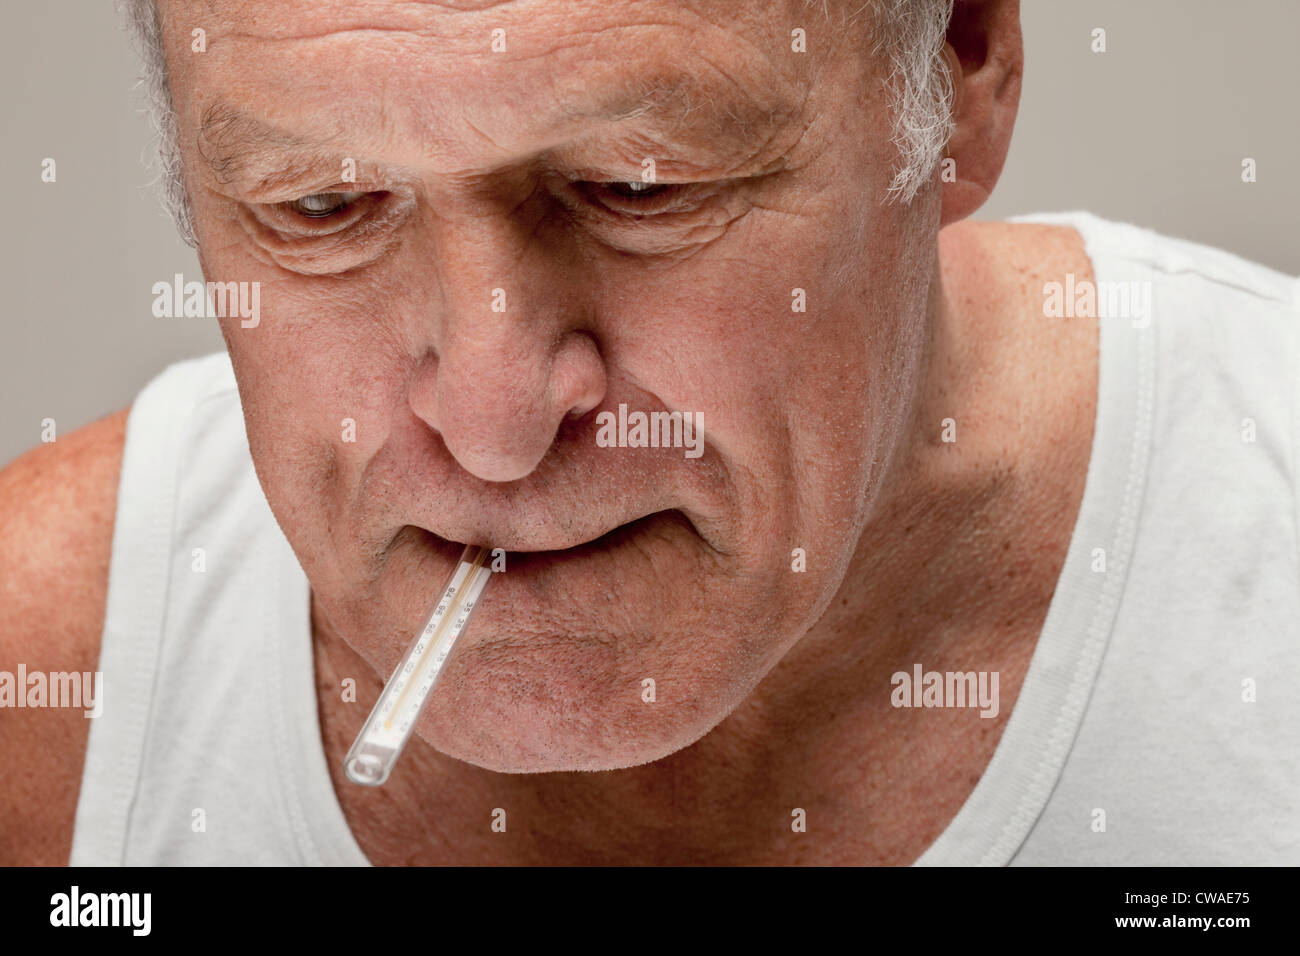 Senior man with thermometer in mouth - Stock Image